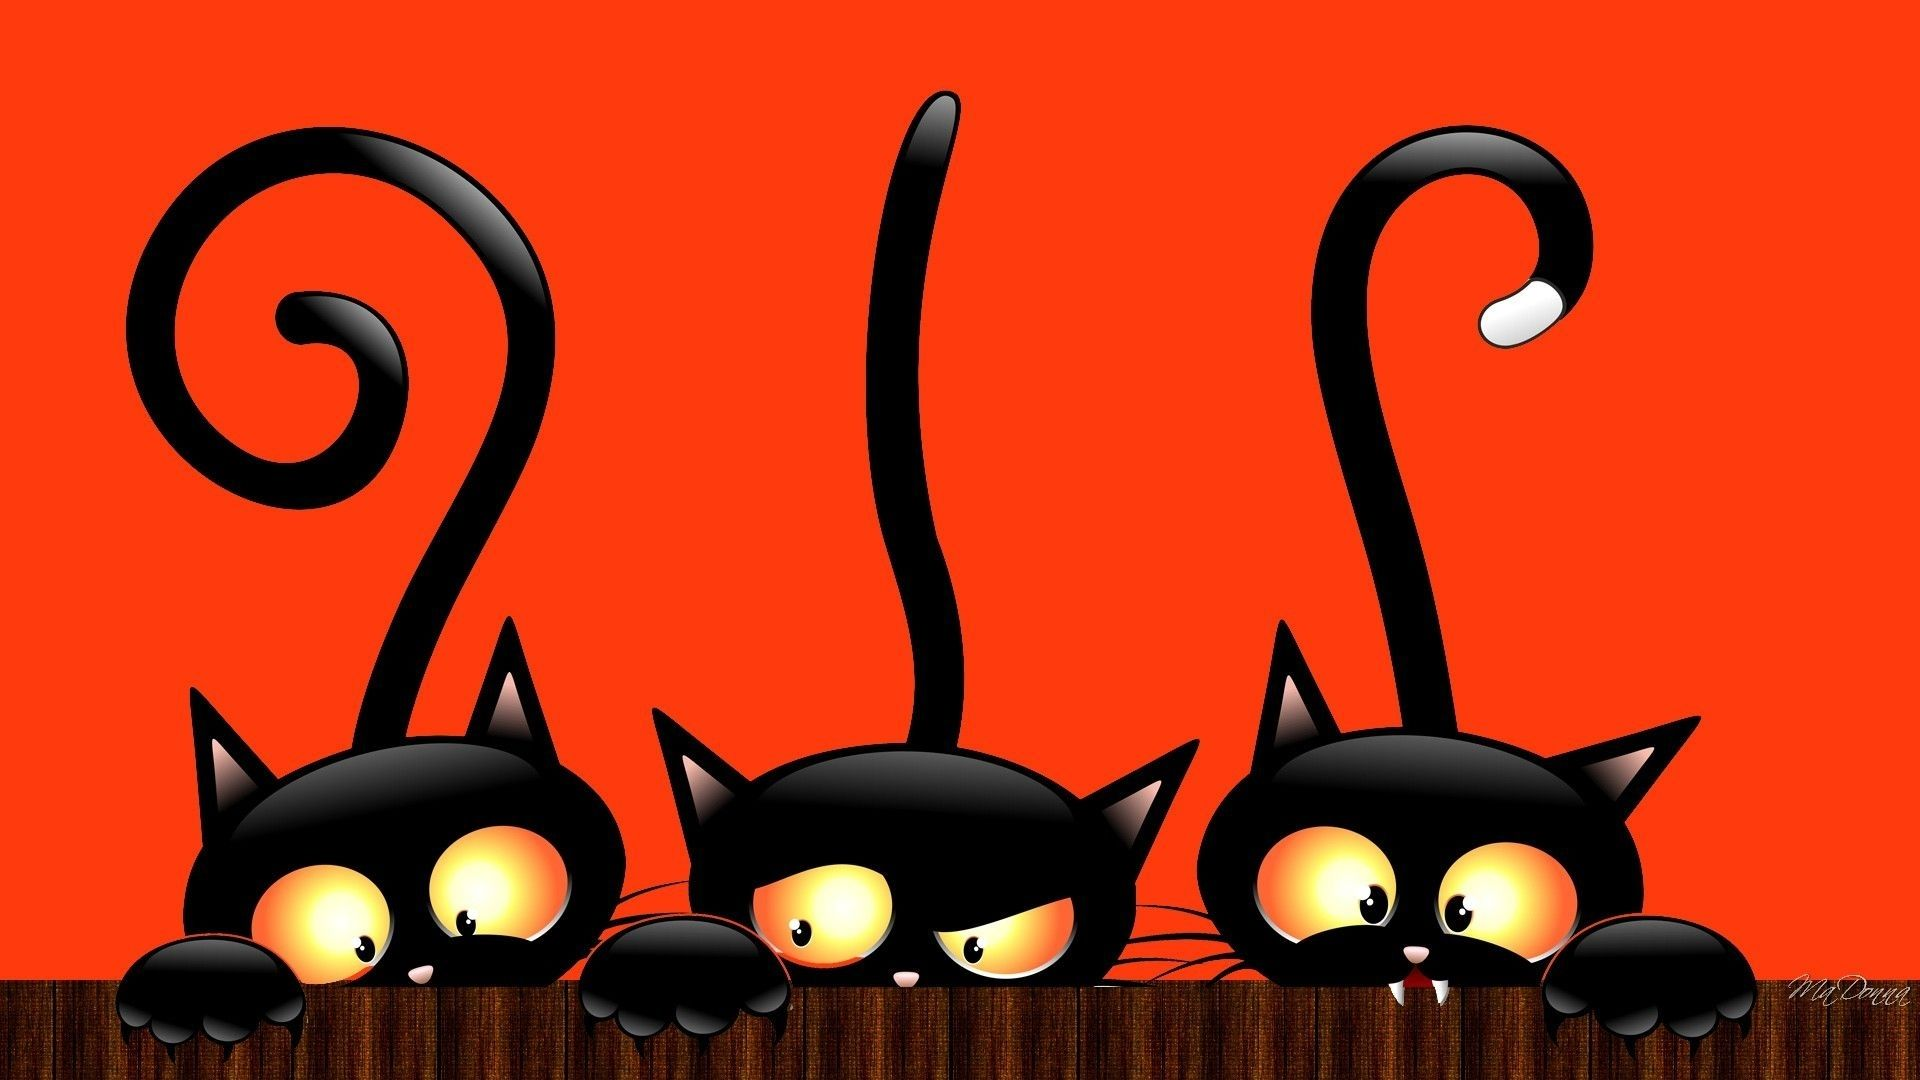 10 New Cute Cat Halloween Backgrounds Full Hd 1920 1080 For Pc